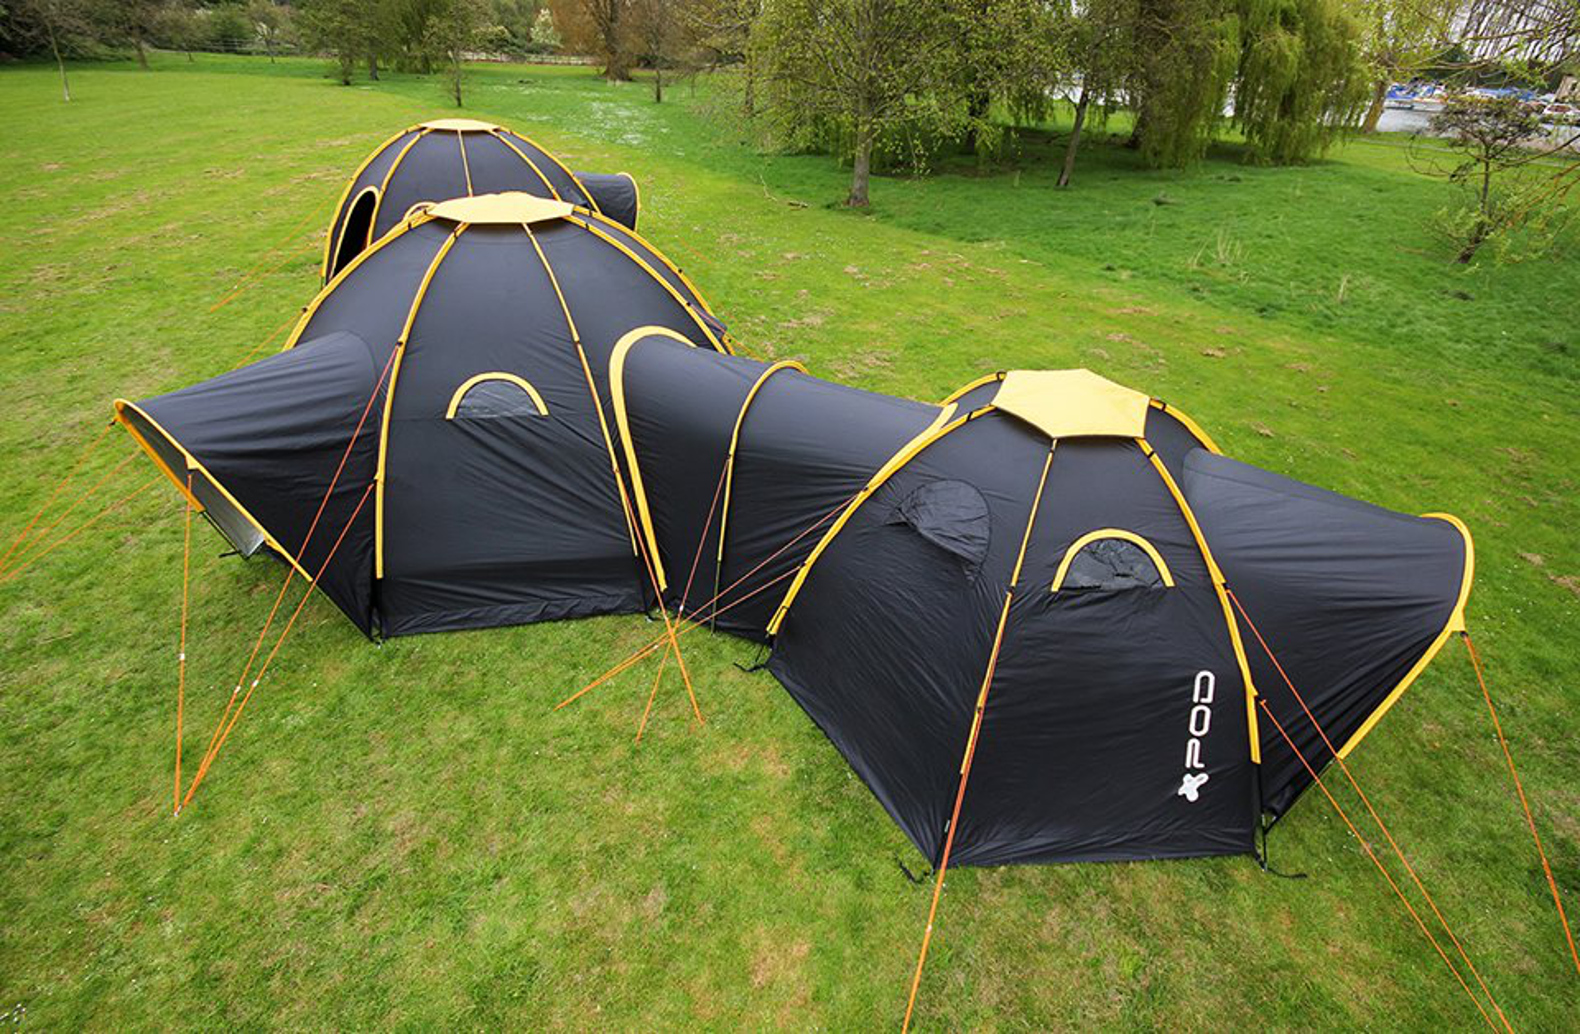 Modular POD tents connect to create multi-room camping getaways for family and friends